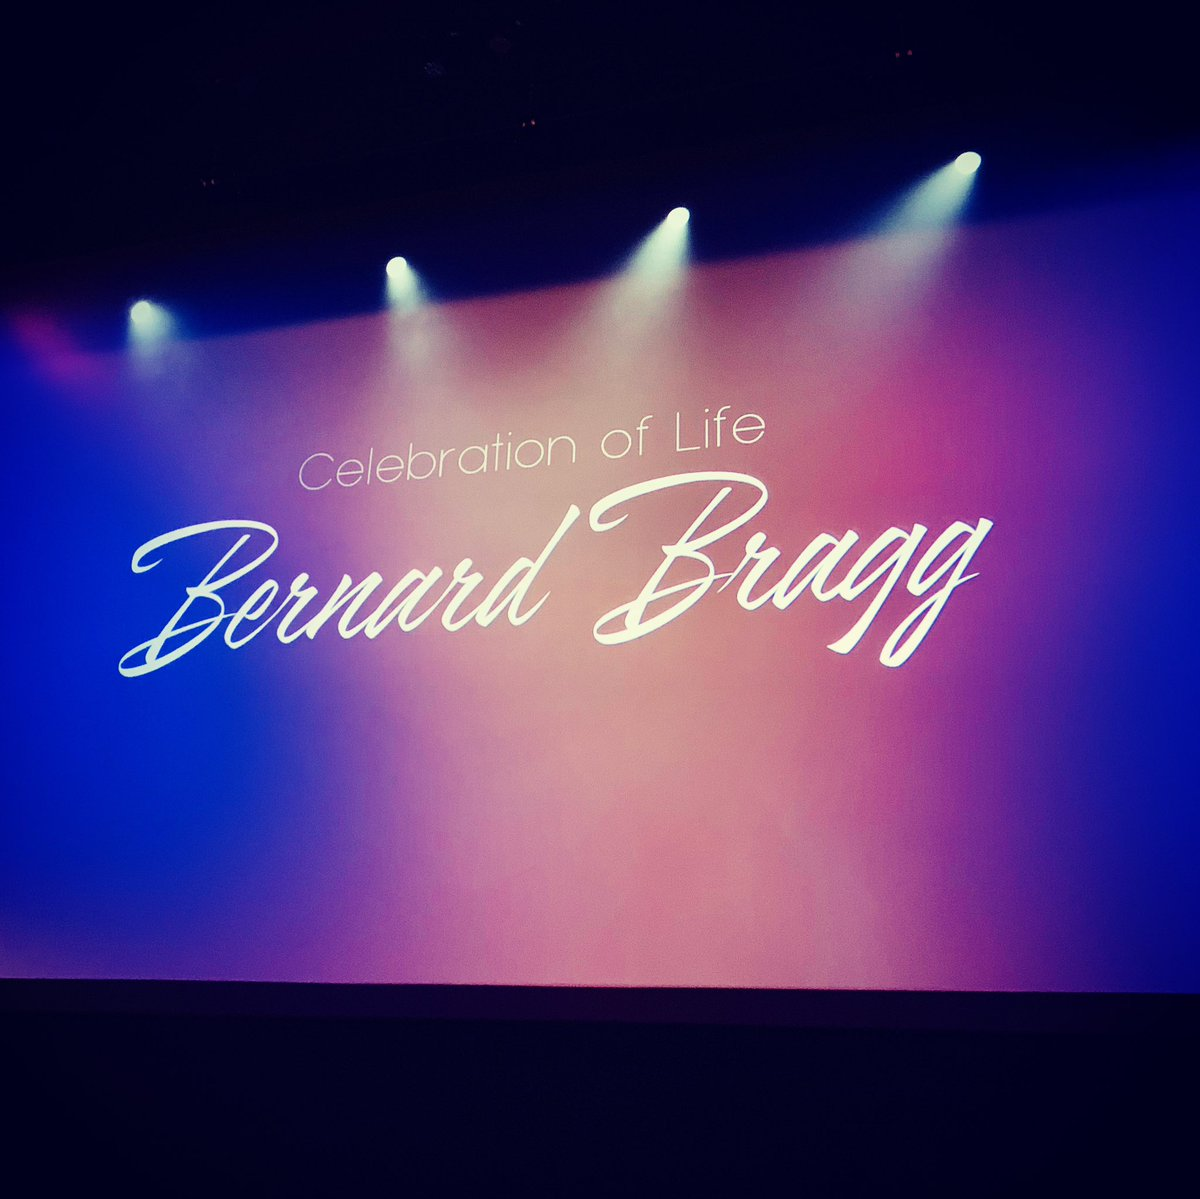 Celebrating the life of the father of Deaf Theater, Bernard Bragg. https://t.co/bZWqzJOzsy